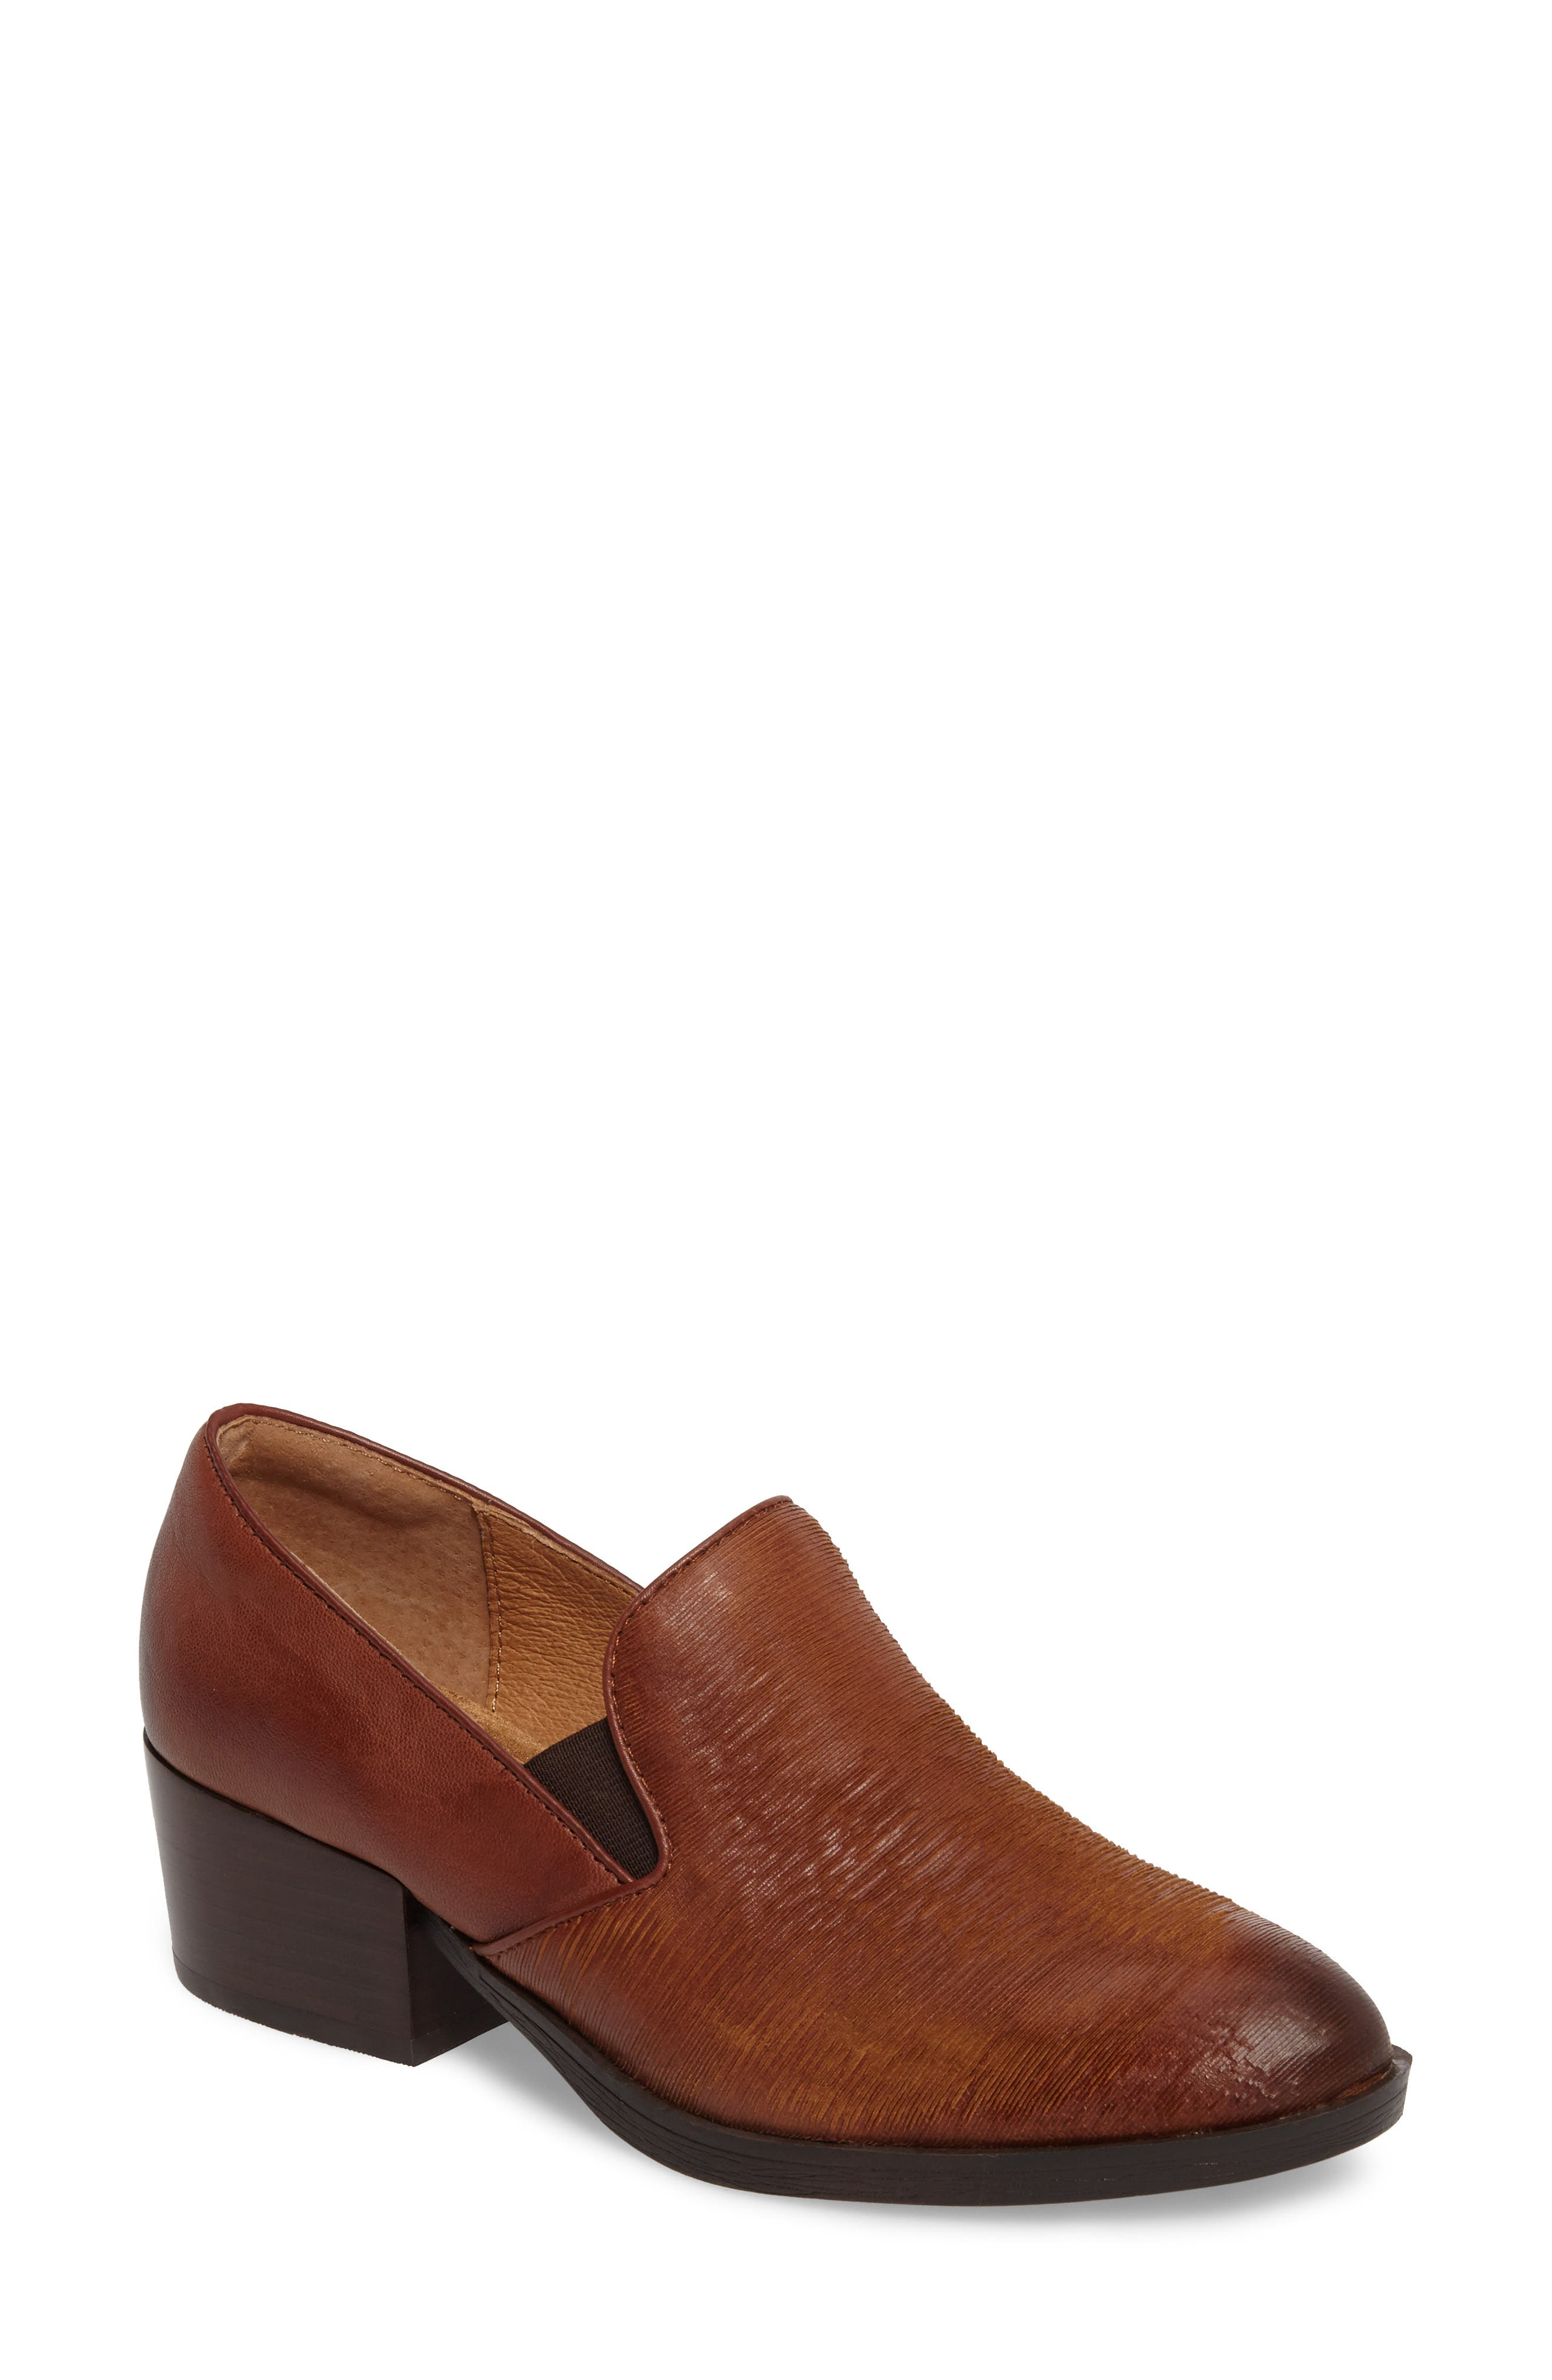 Velina Pump,                             Main thumbnail 1, color,                             WHISKEY/ CAFFE LEATHER